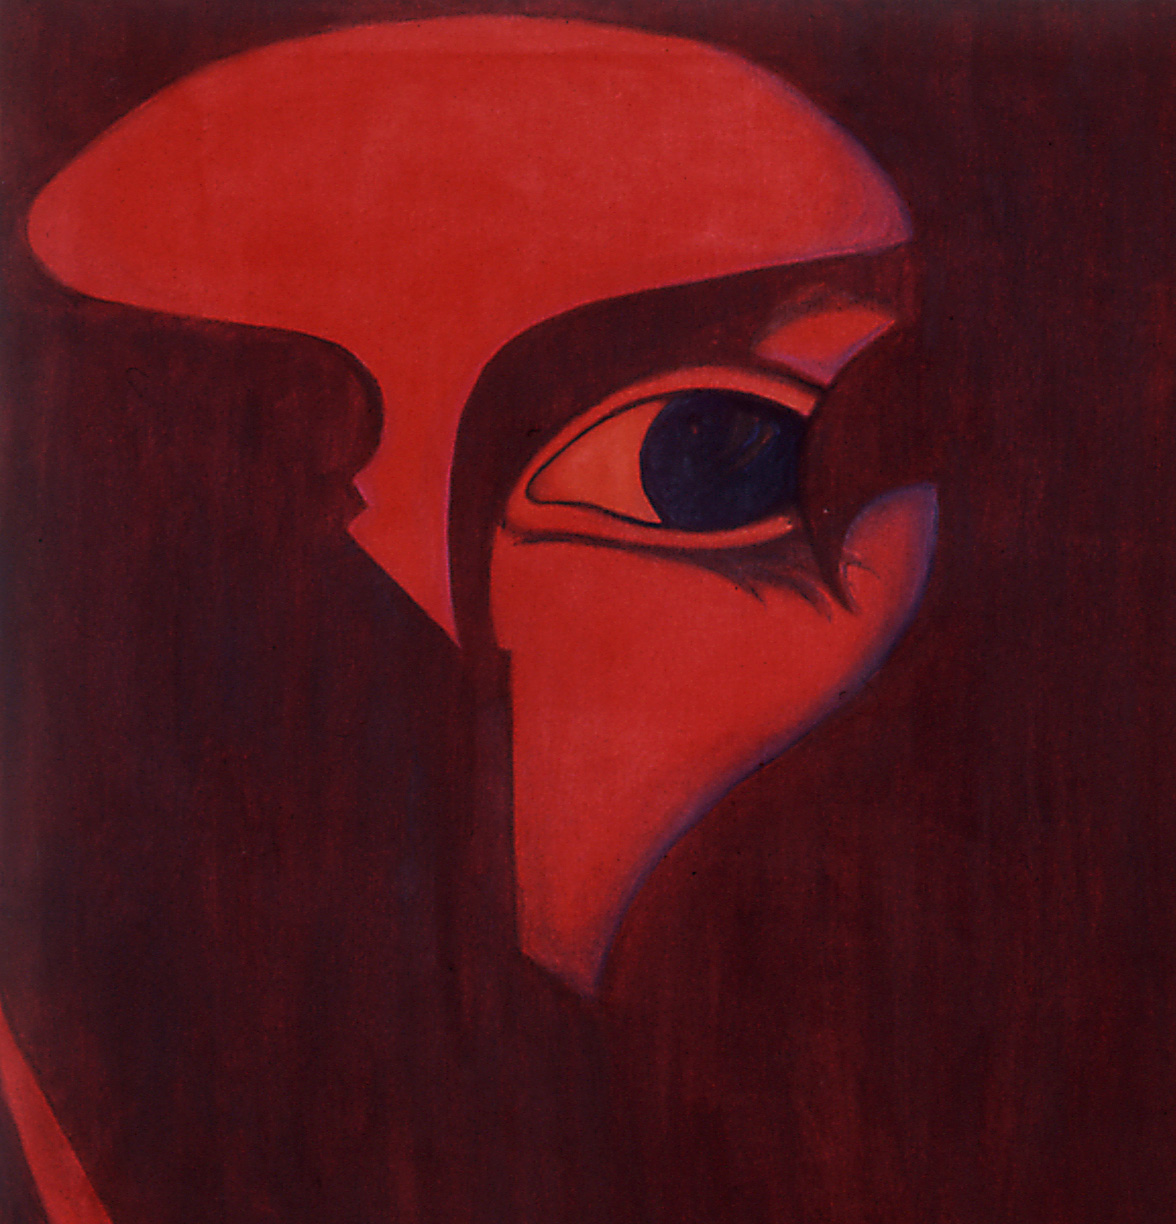 Indira-Cesarine-Girl-and-Red-Shadow-Oil-On-Canvas-1988-detail-lr.jpg